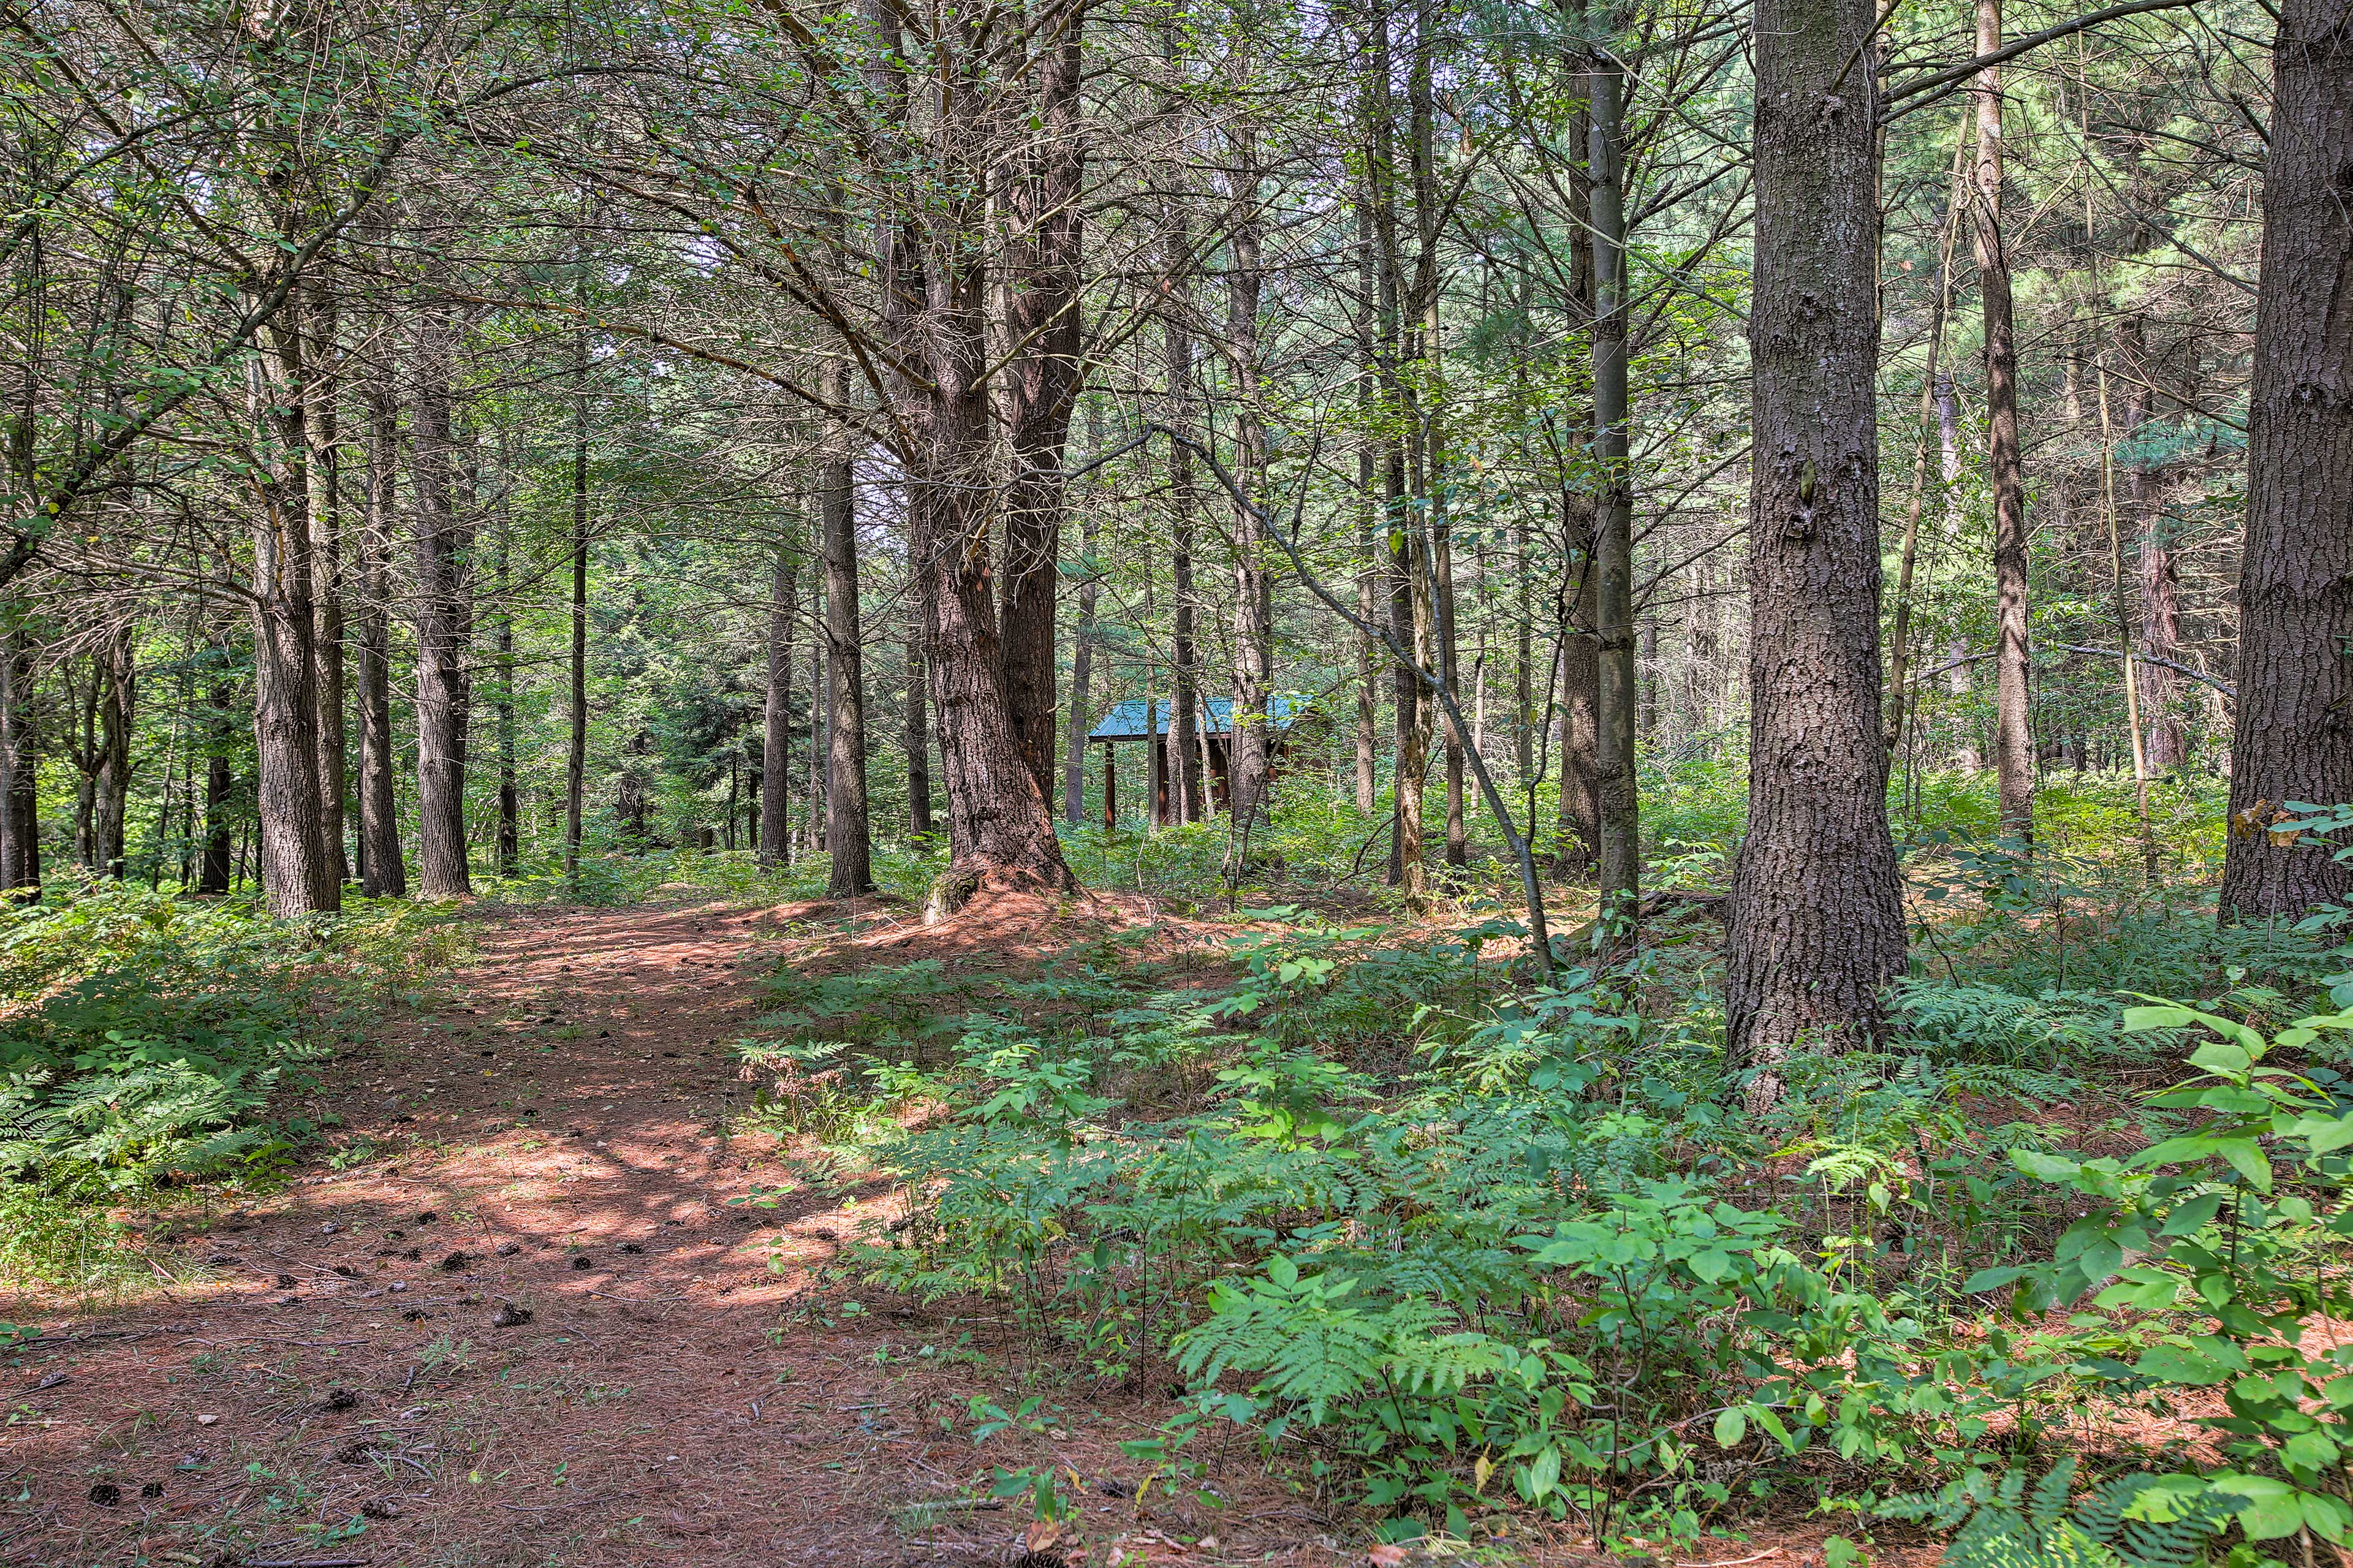 Explore the trails surrounding the cabin. Adventure awaits!